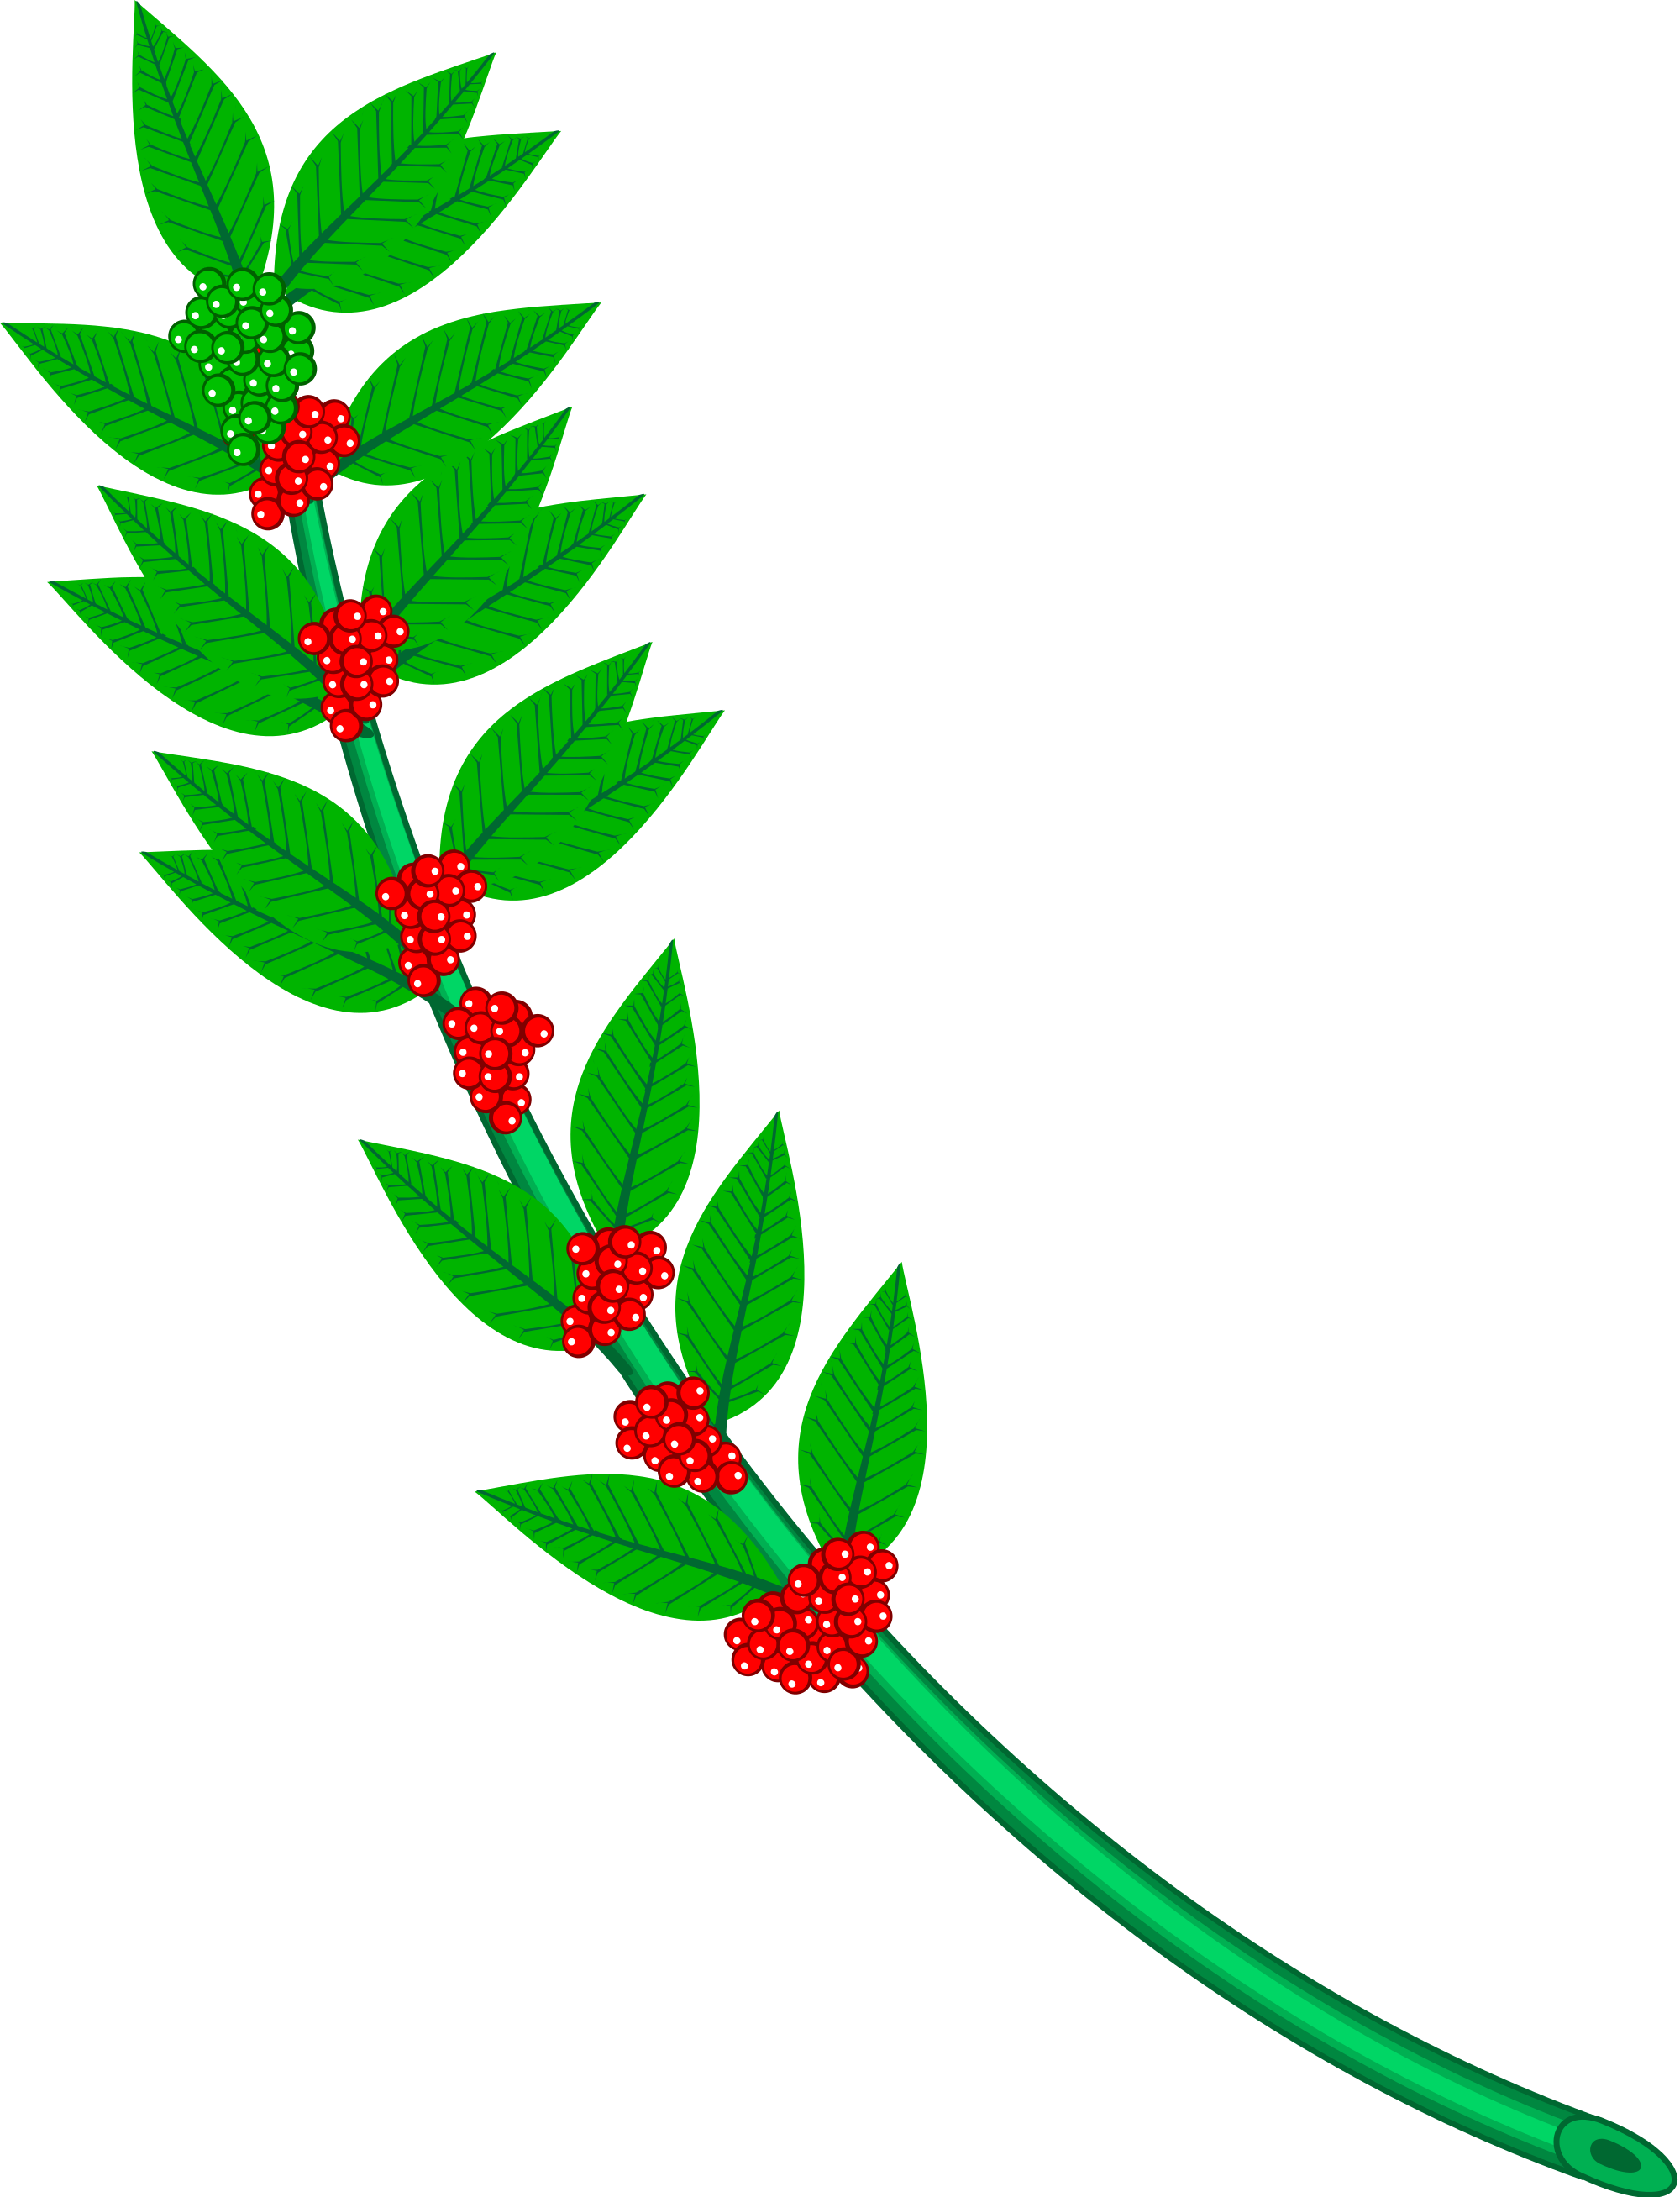 Plants clipart coffee tree. File heraldic branch svg